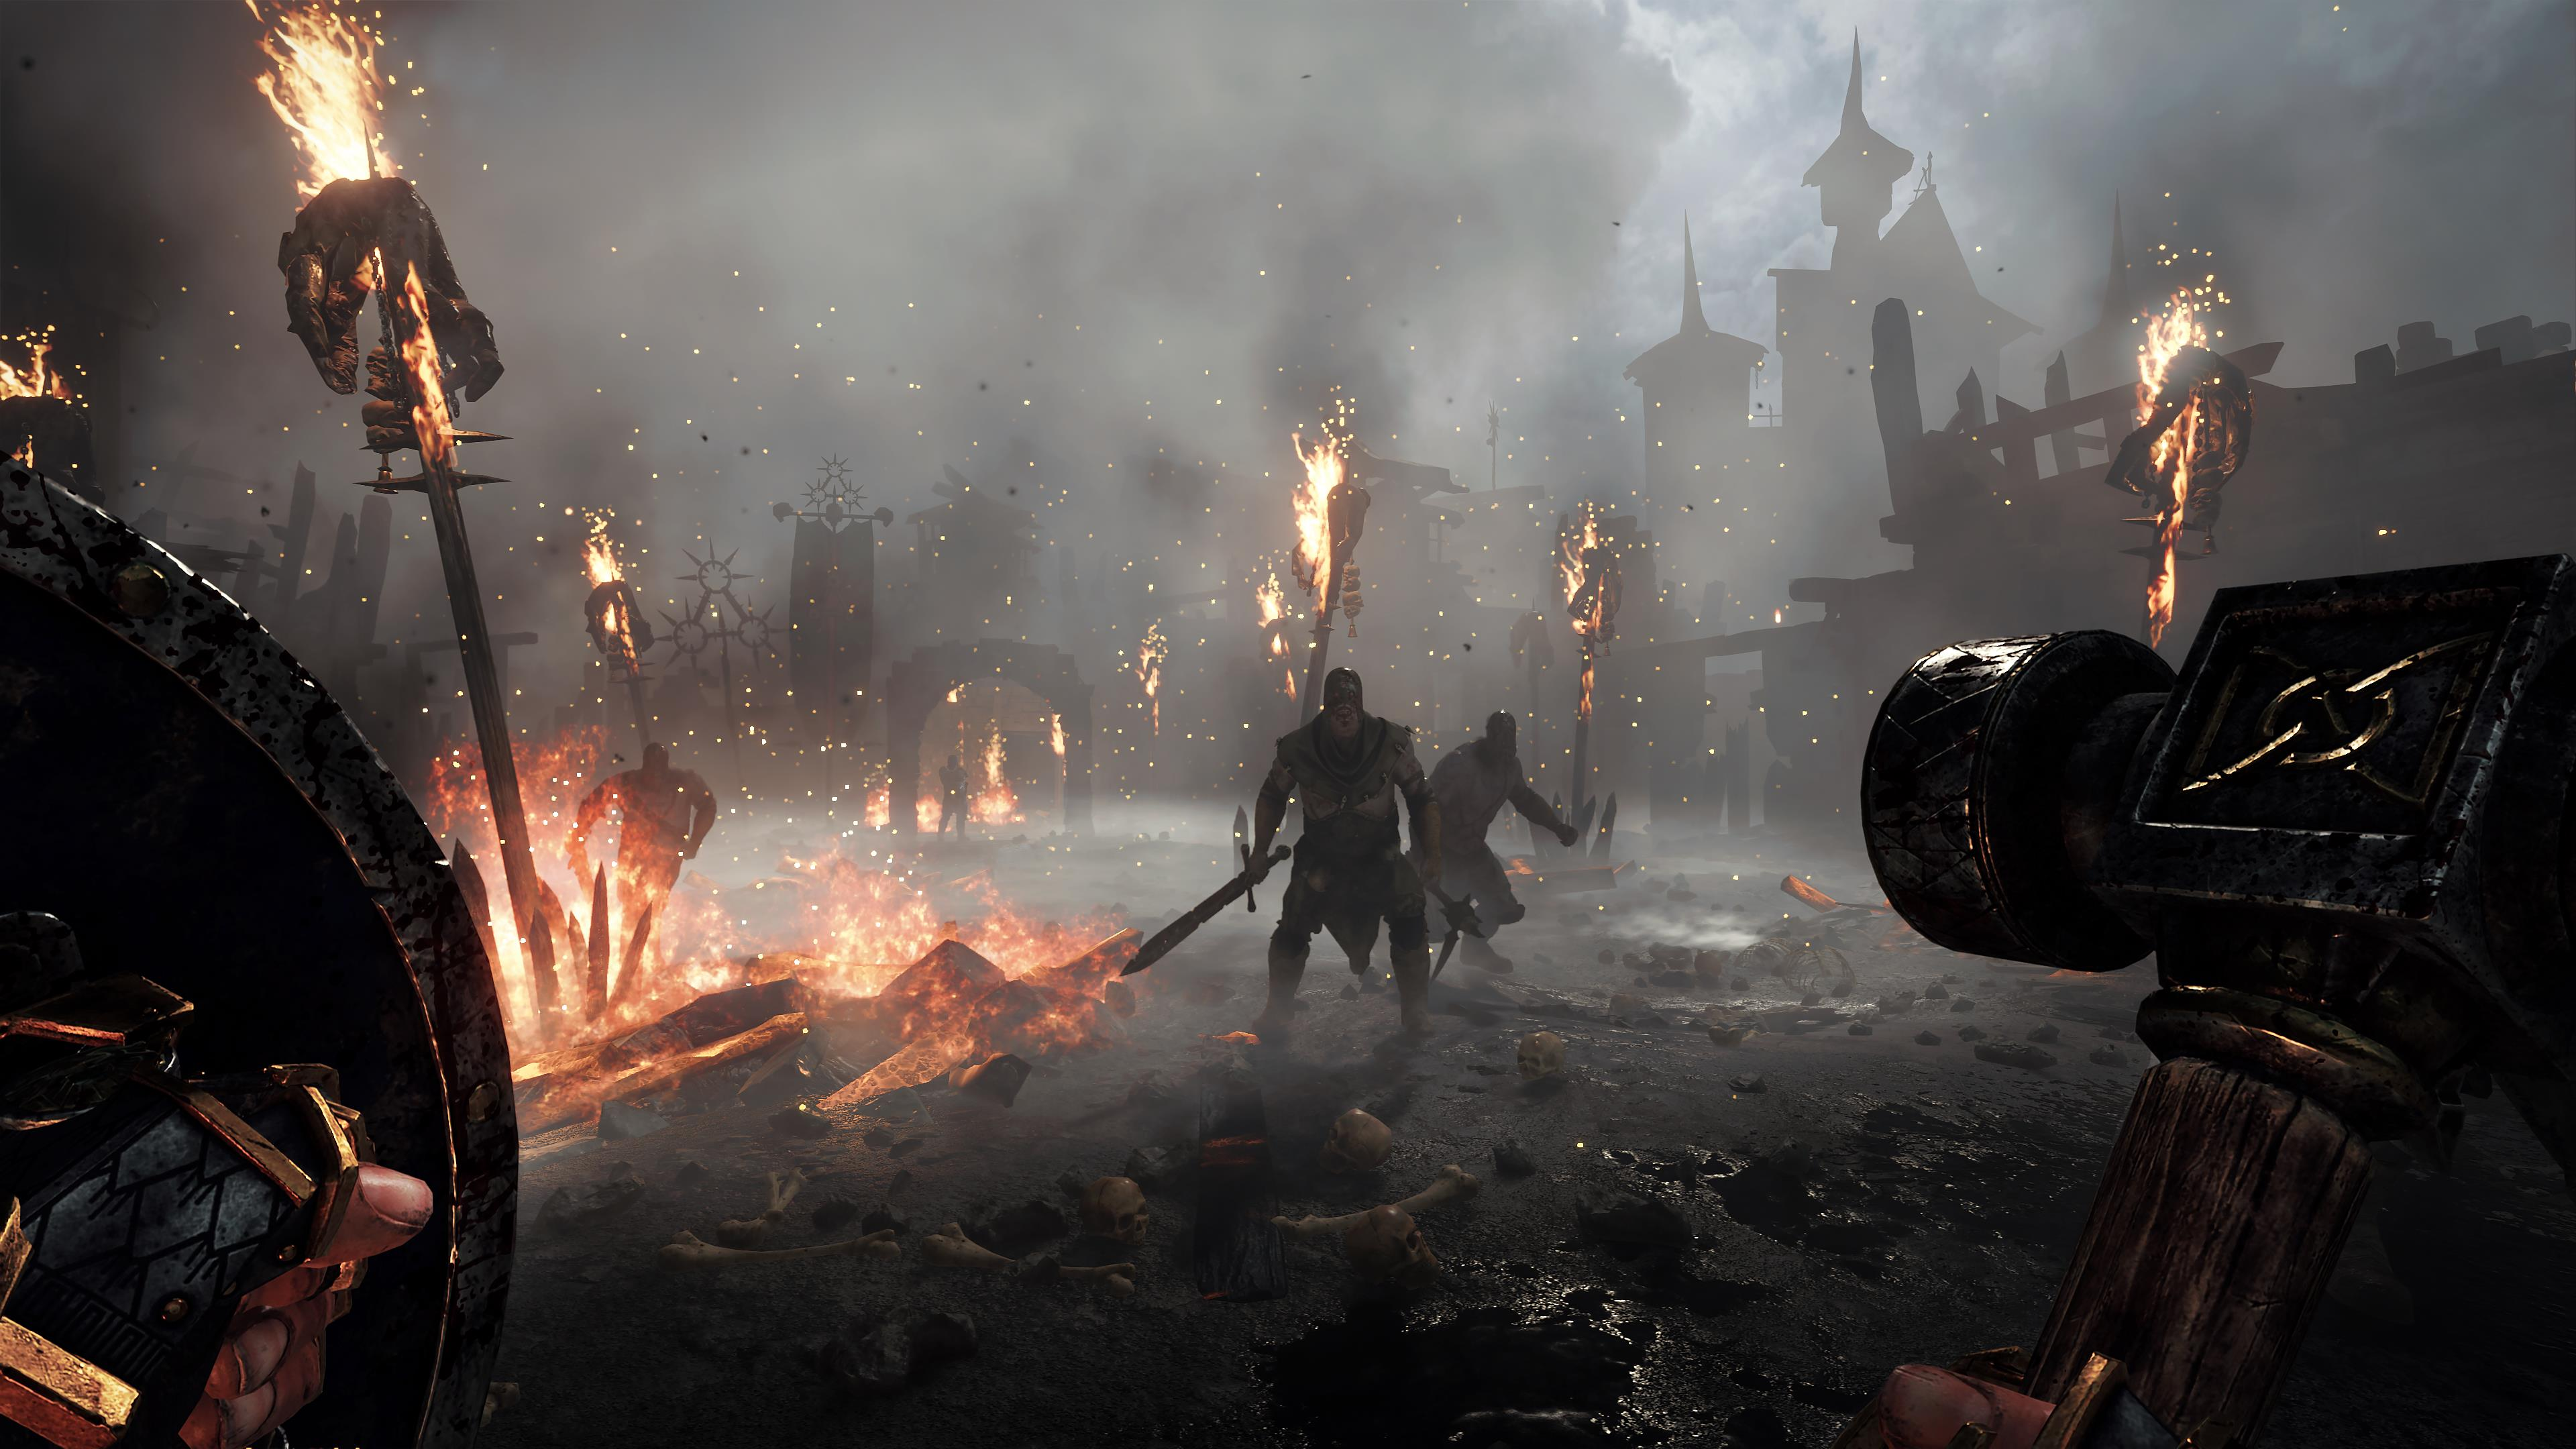 Warhammer Vermintide 2 Weapon Traits And Item Traits: Every Bonus Trait Effect Detailed